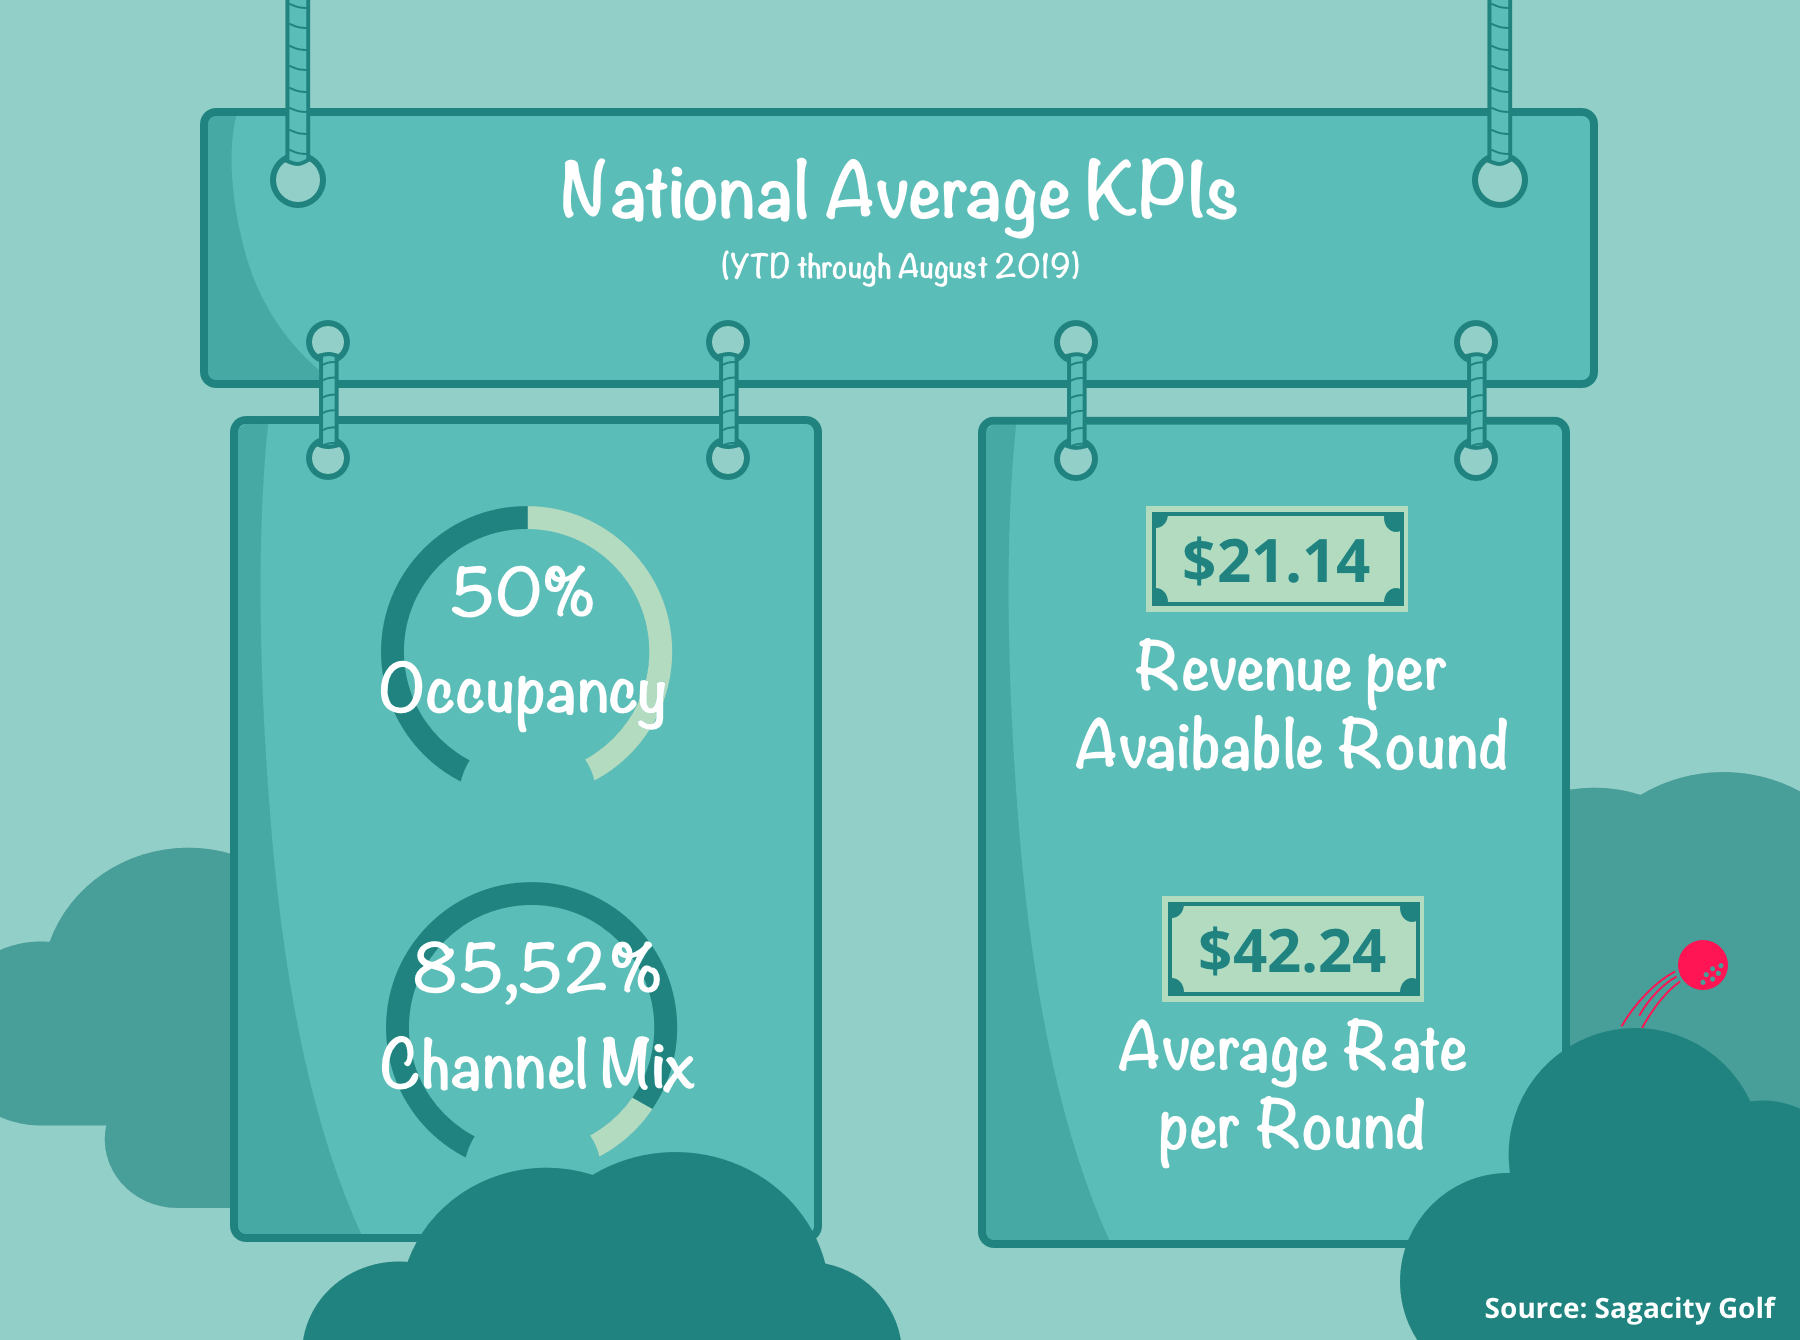 National-percentages-kpis